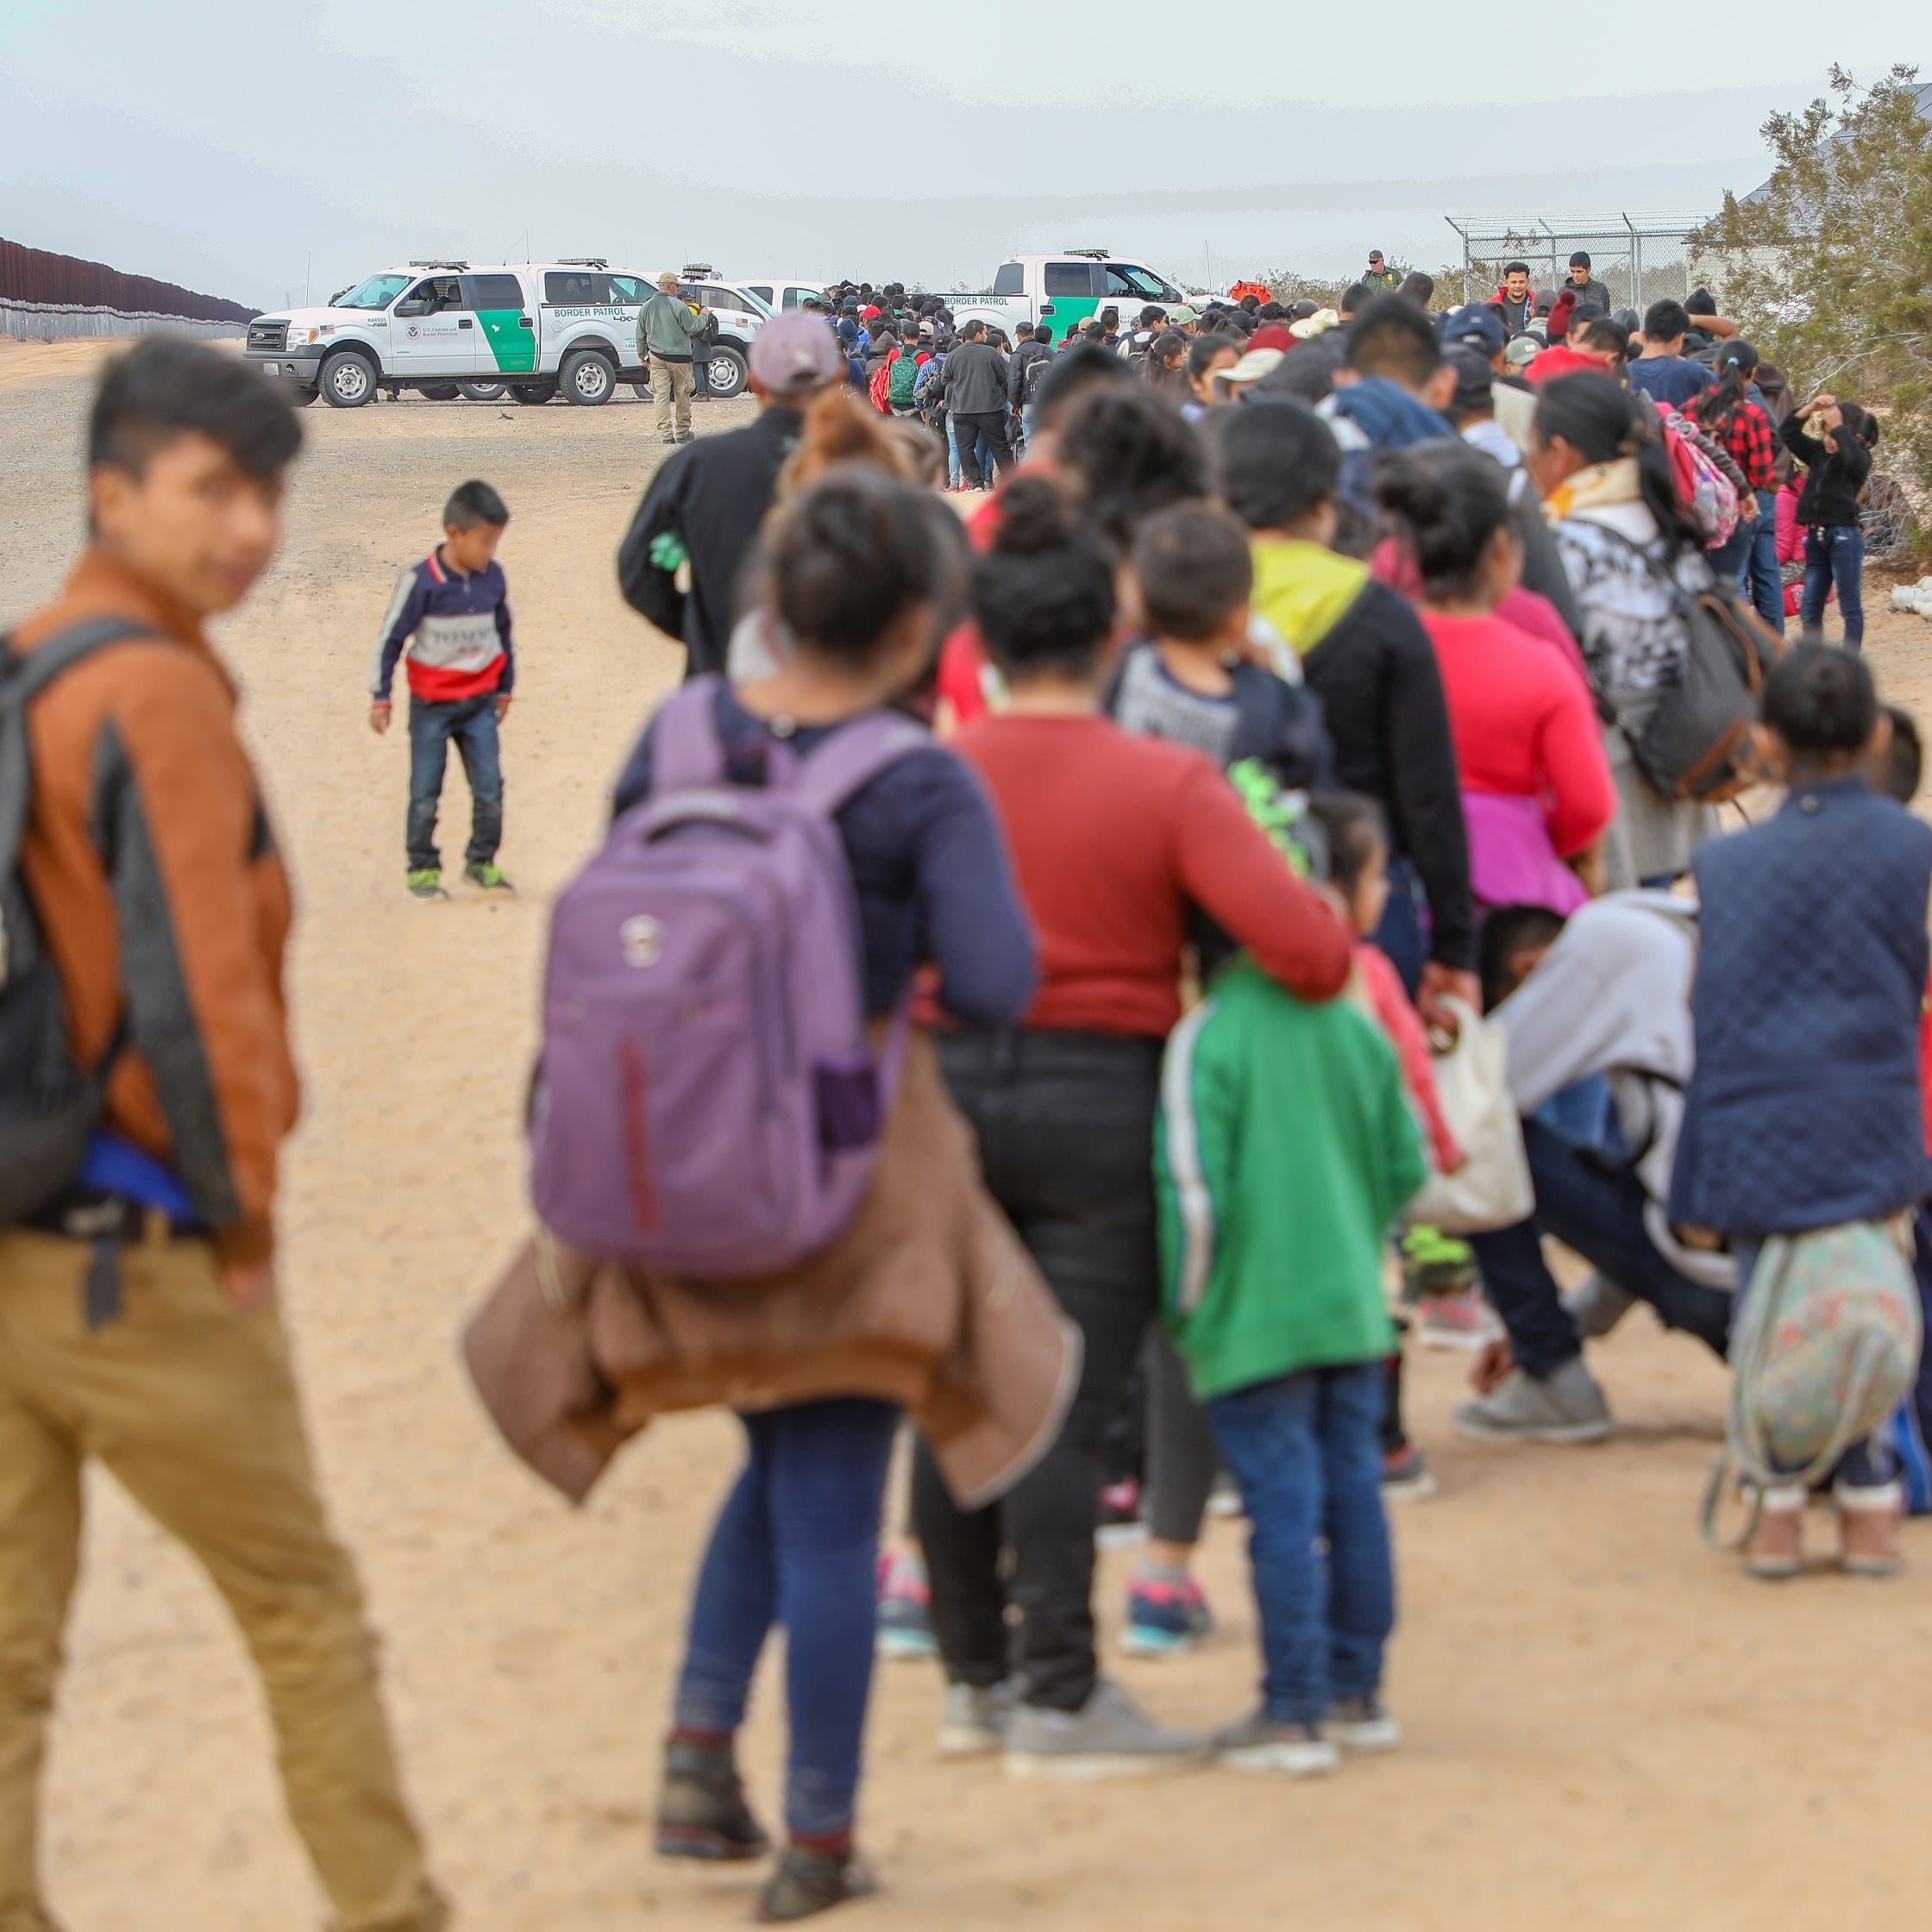 Largest-ever group of migrant families tunnels under Yuma border fence